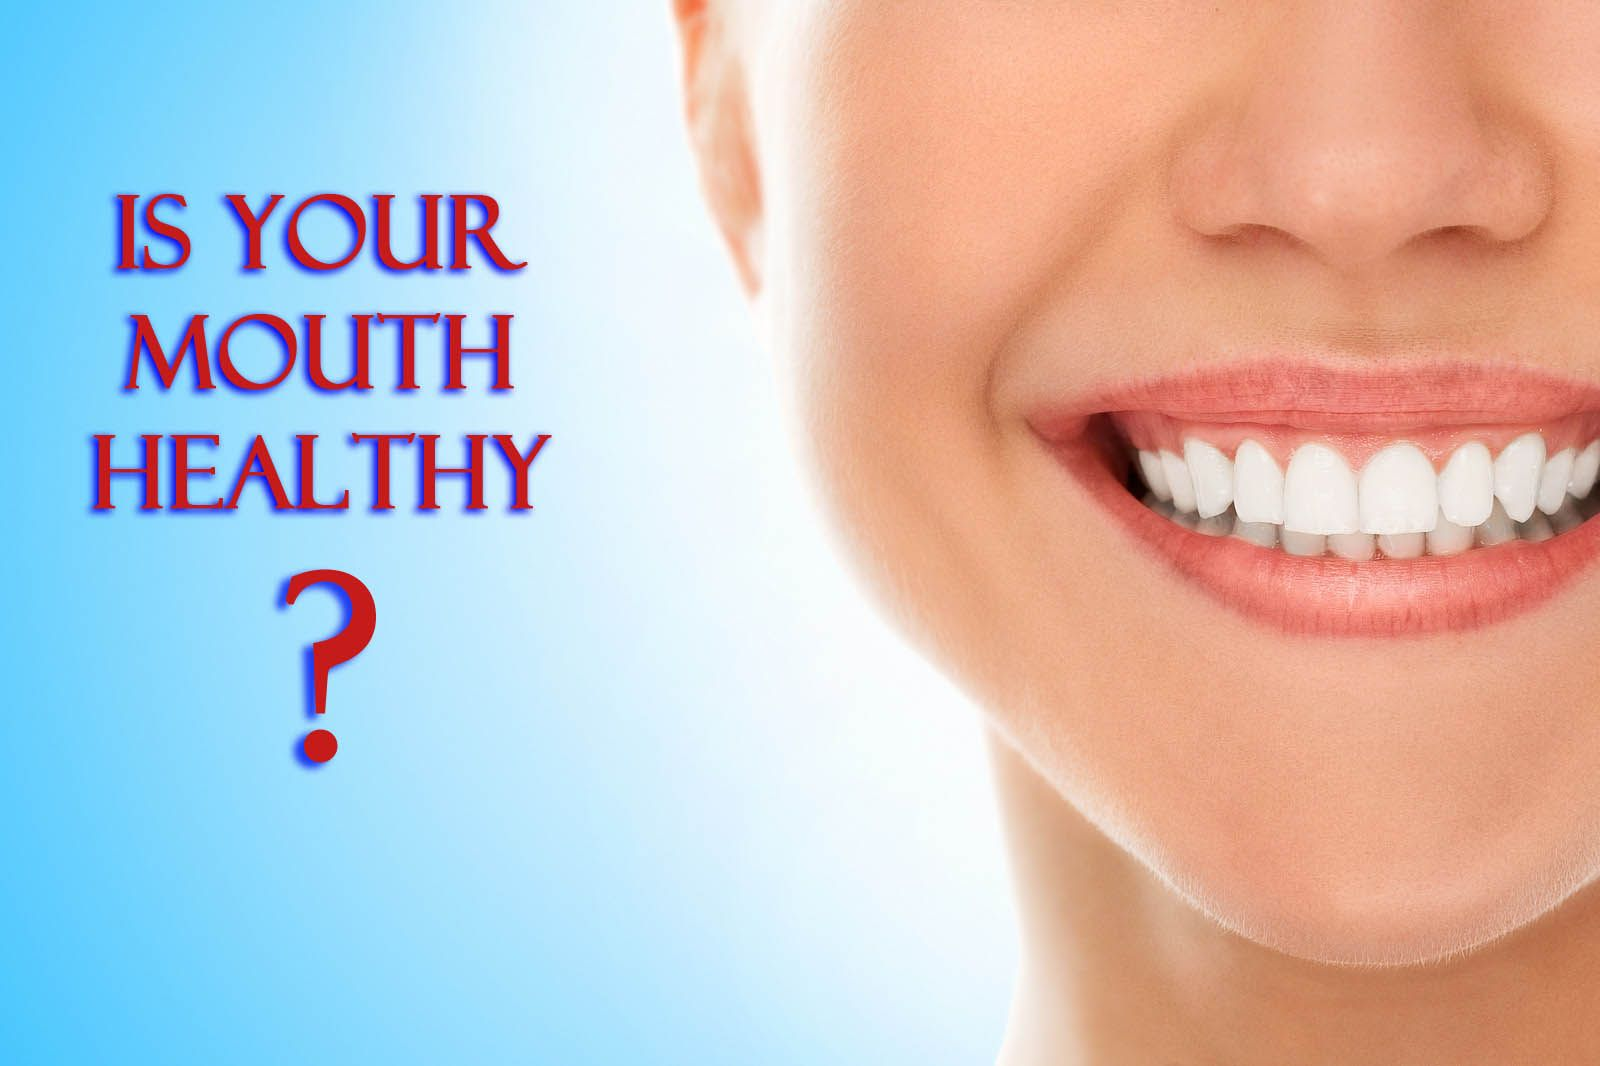 A healthy mouth means clean teeth and no gum related